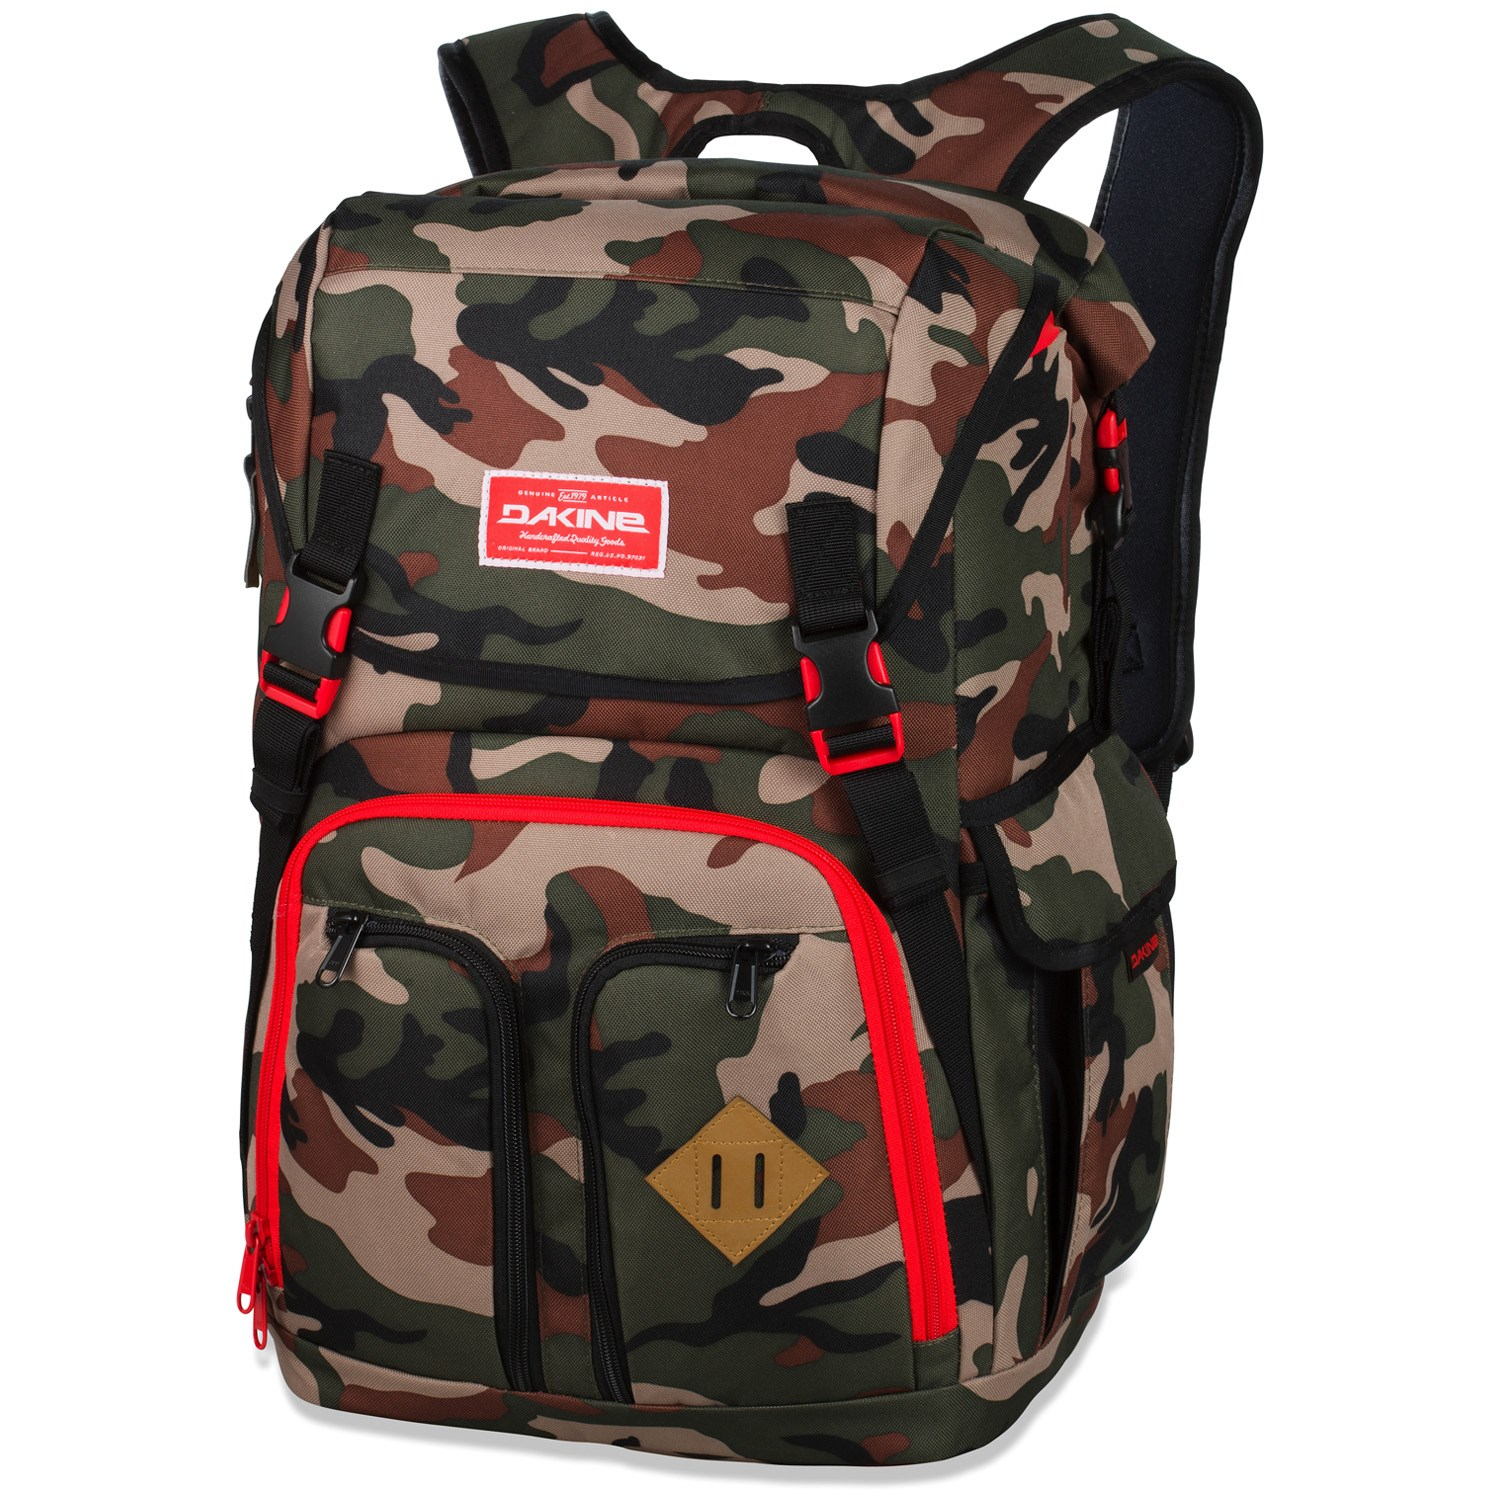 DaKine Jetty 32L Wet/Dry Backpack   evo outlet